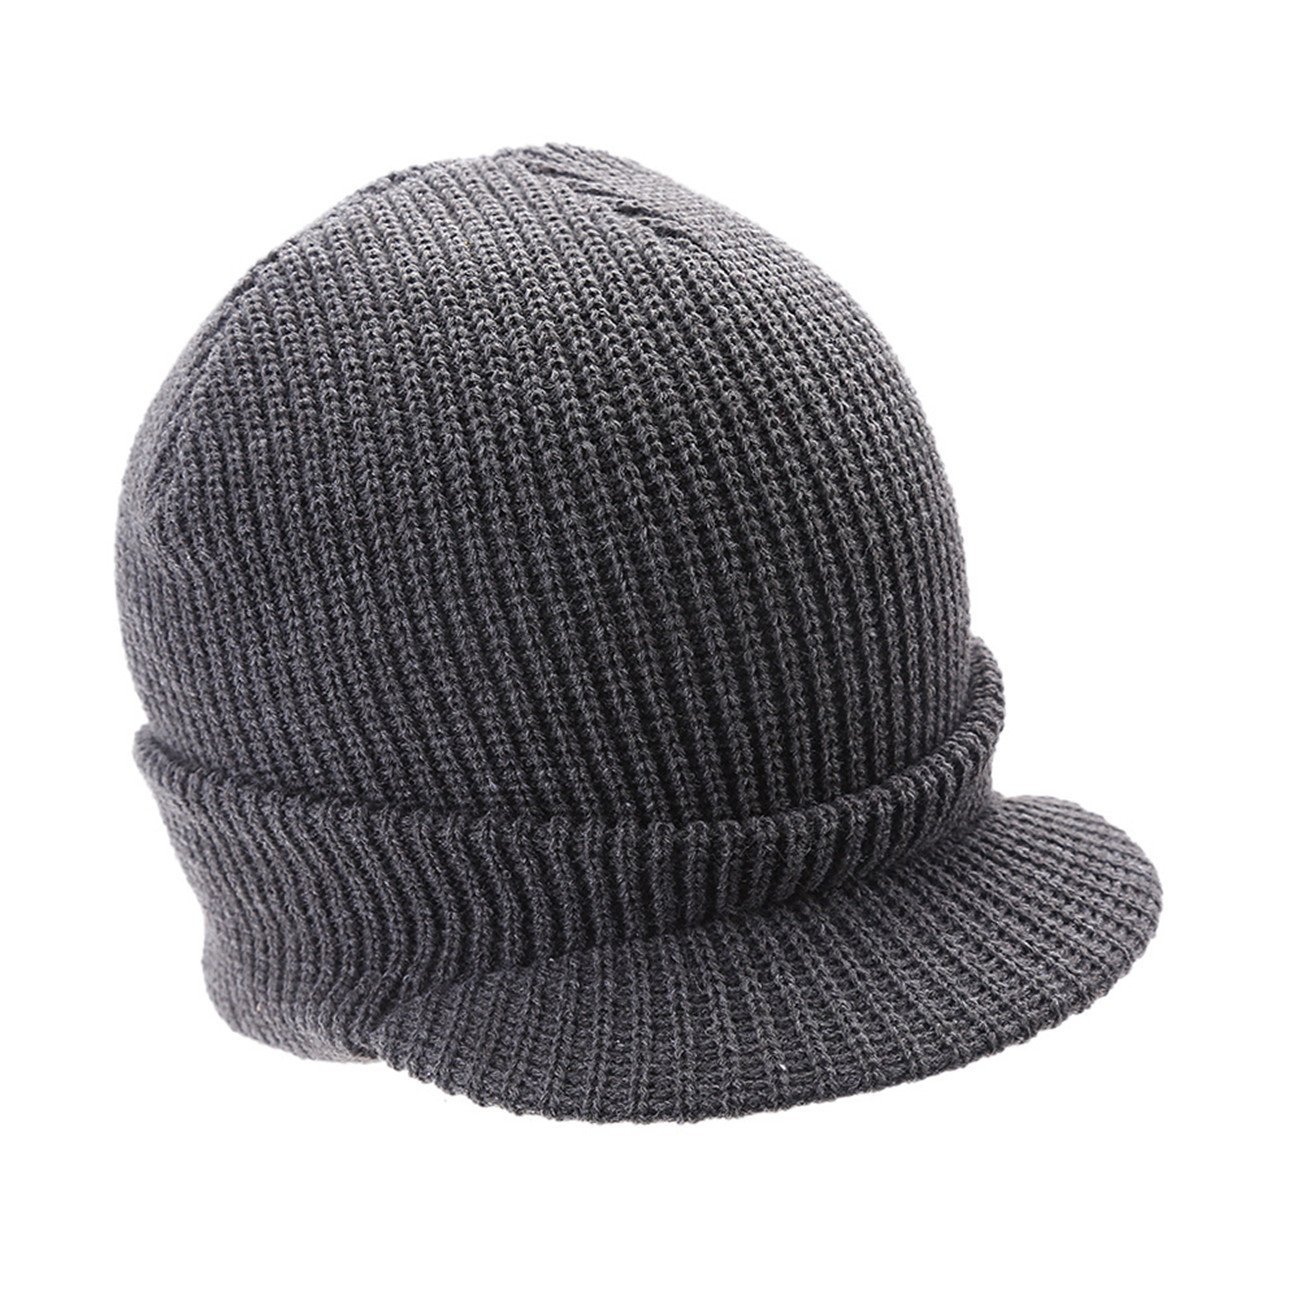 c87e80992df Get Quotations · Leories Winter Knitted Hat Windproof Cap Outdoor Warm  Earflap Hat with Visor